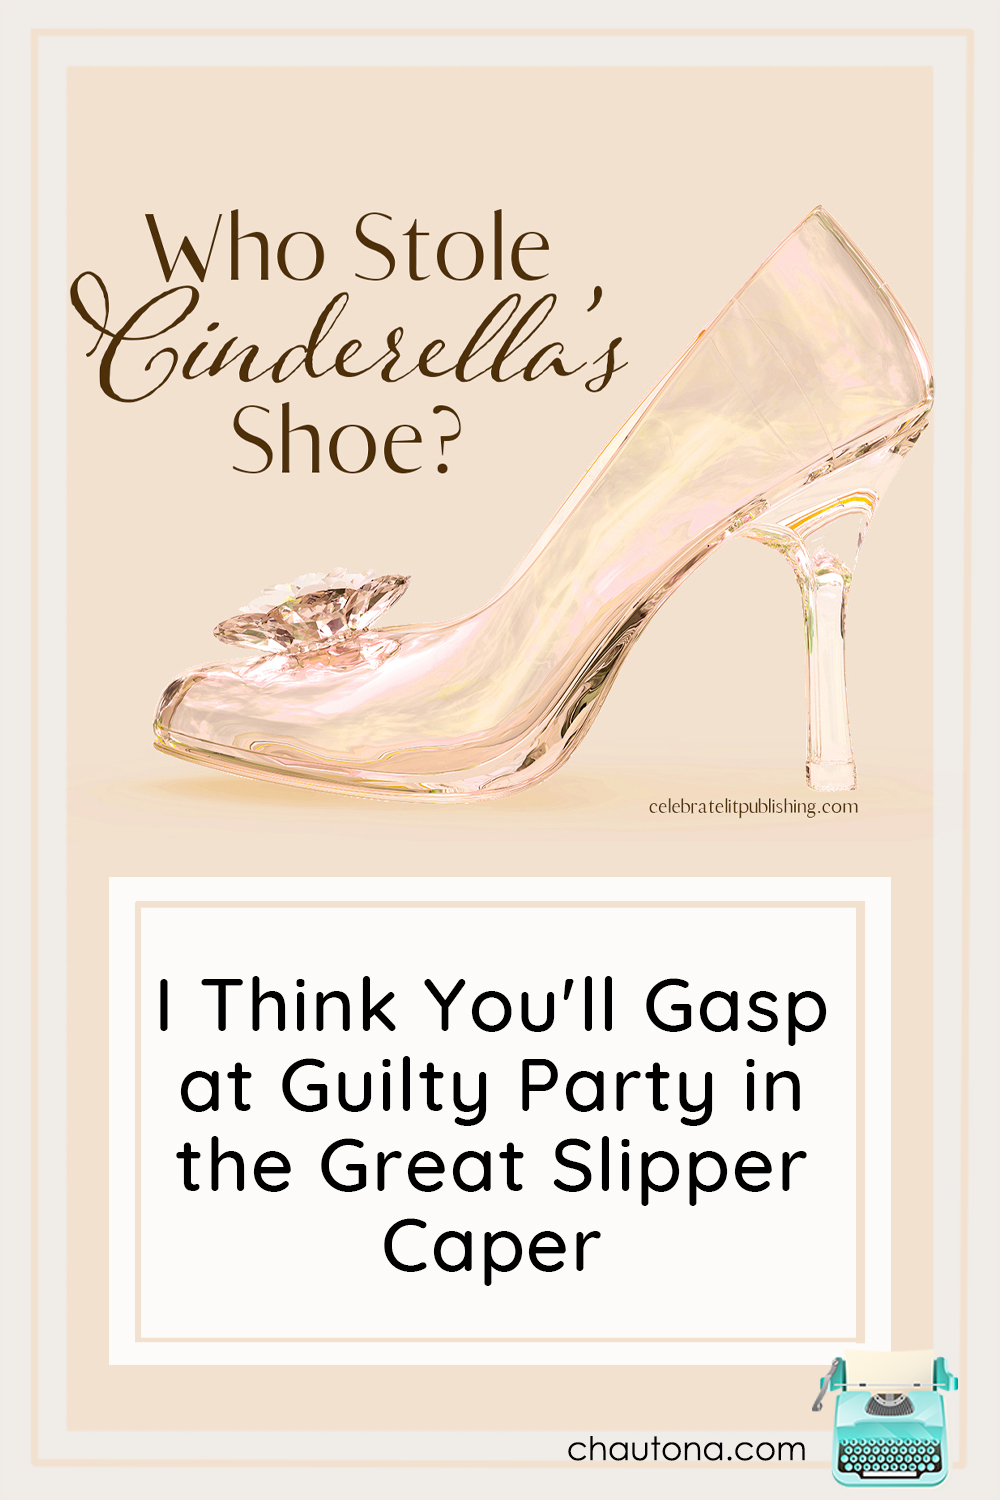 For the release of The Last Gasp, the authors of the Ever After Mysteries are fighting over (and stealing) Cinderella's Slipper. Who stole the shoe? Find out! via @chautonahavig